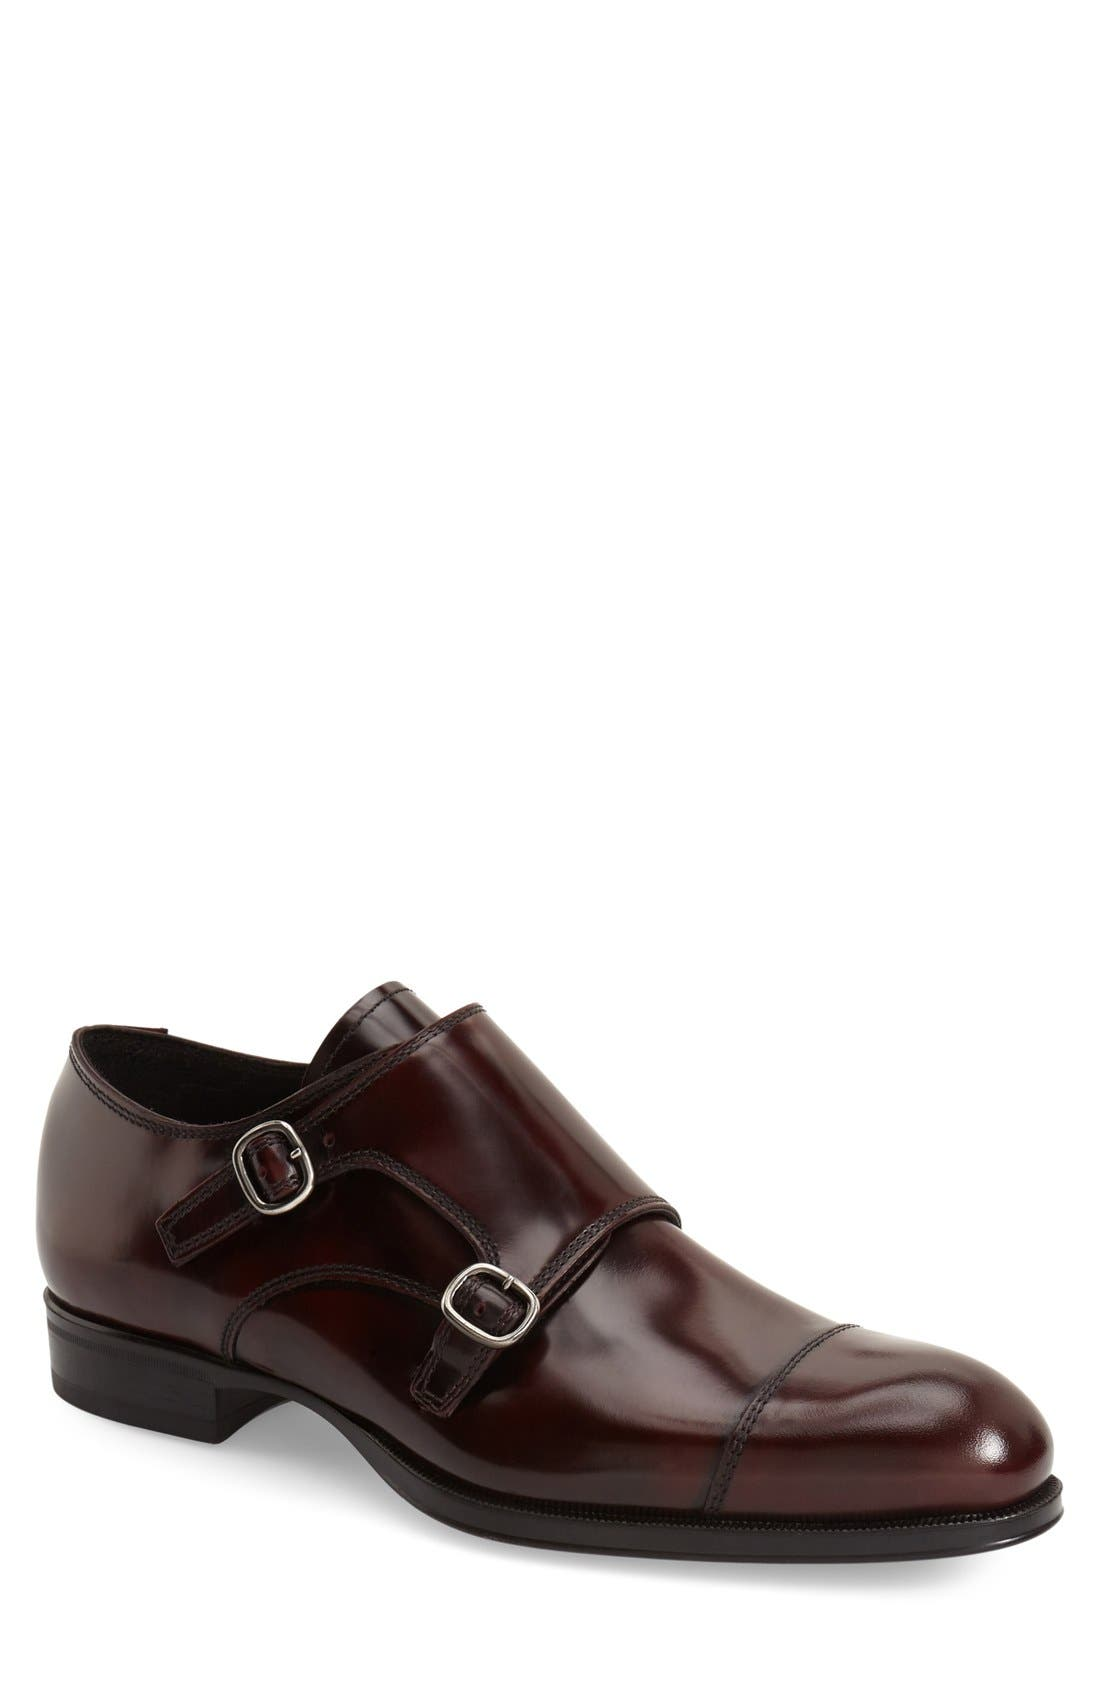 Main Image - To Boot New York 'Bailey' Double Monk Strap Shoe (Men)